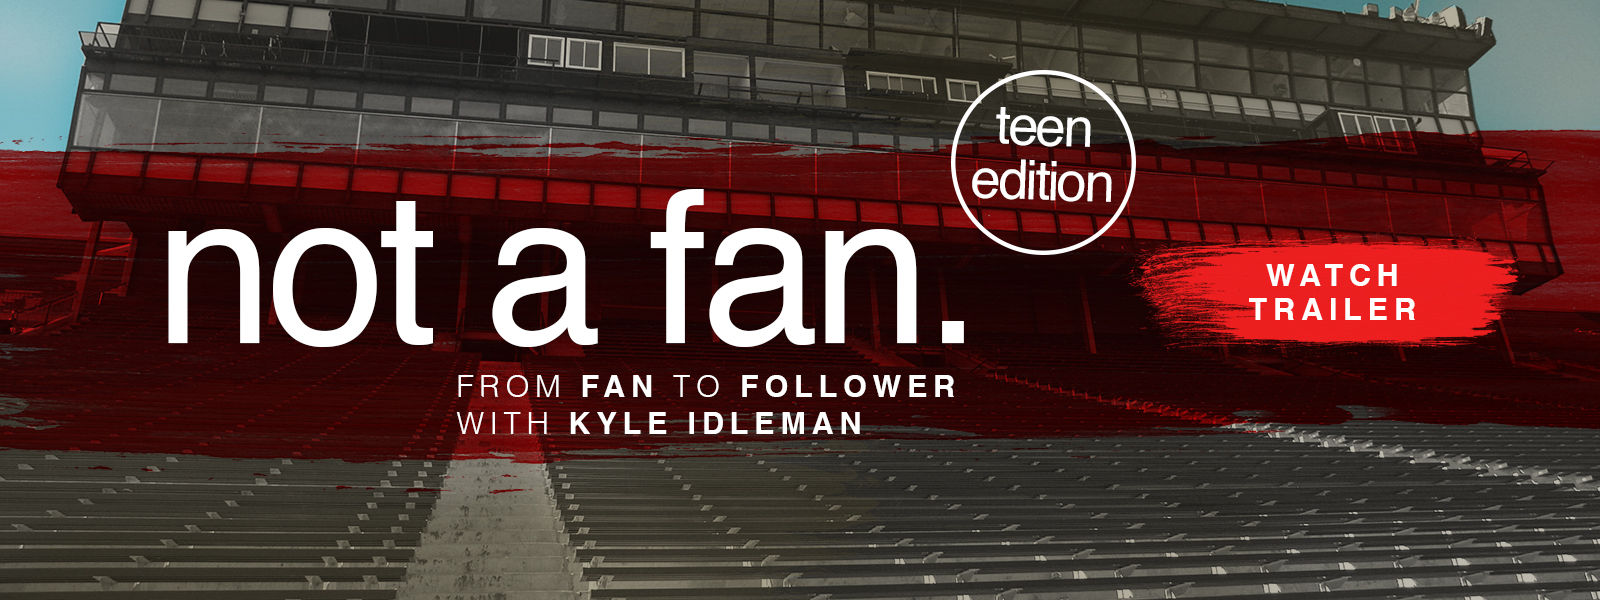 Not a Fan: Teen Edition